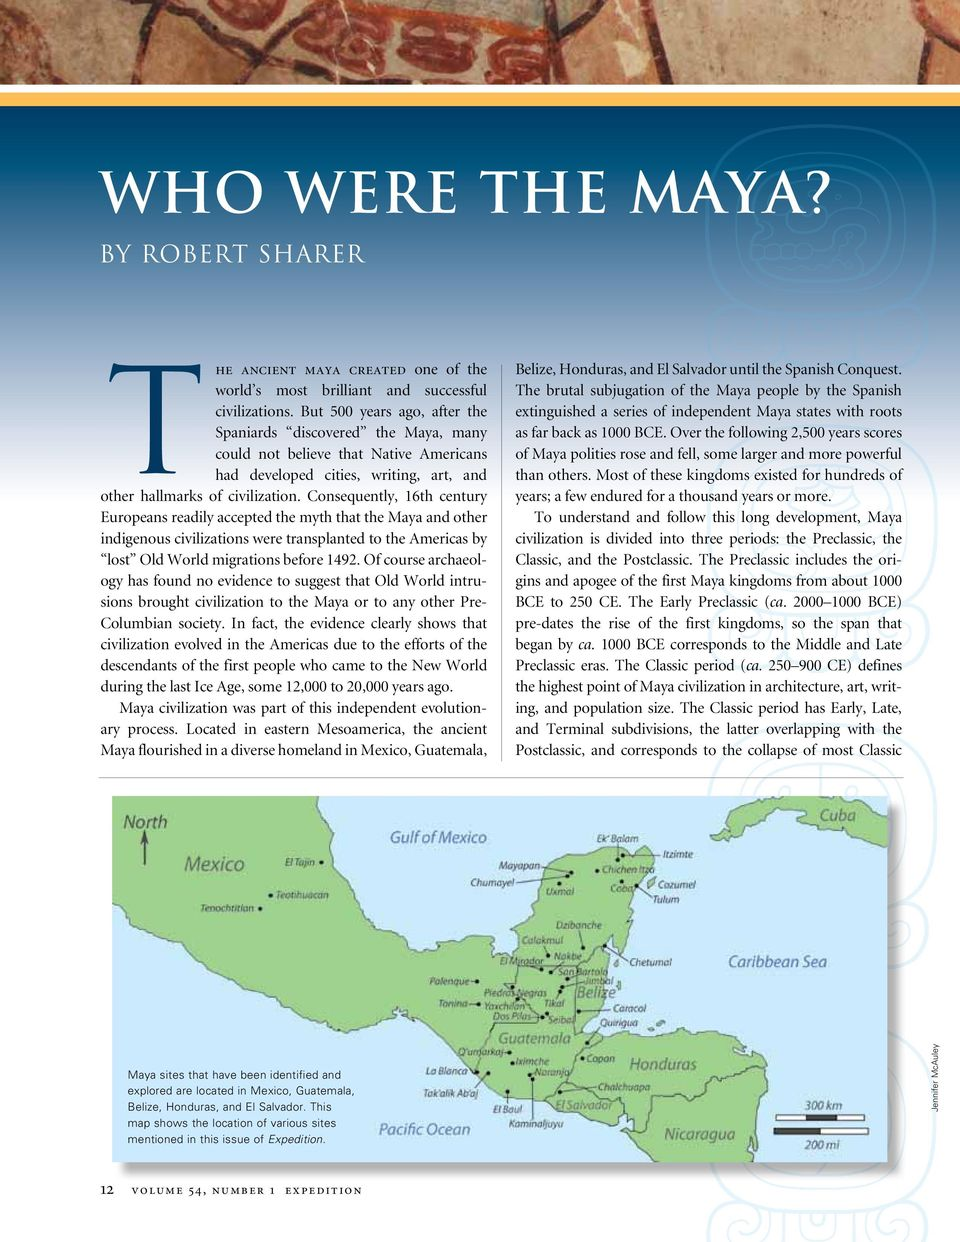 Consequently, 16th century Europeans readily accepted the myth that the Maya and other indigenous civilizations were transplanted to the Americas by lost Old World migrations before 1492.